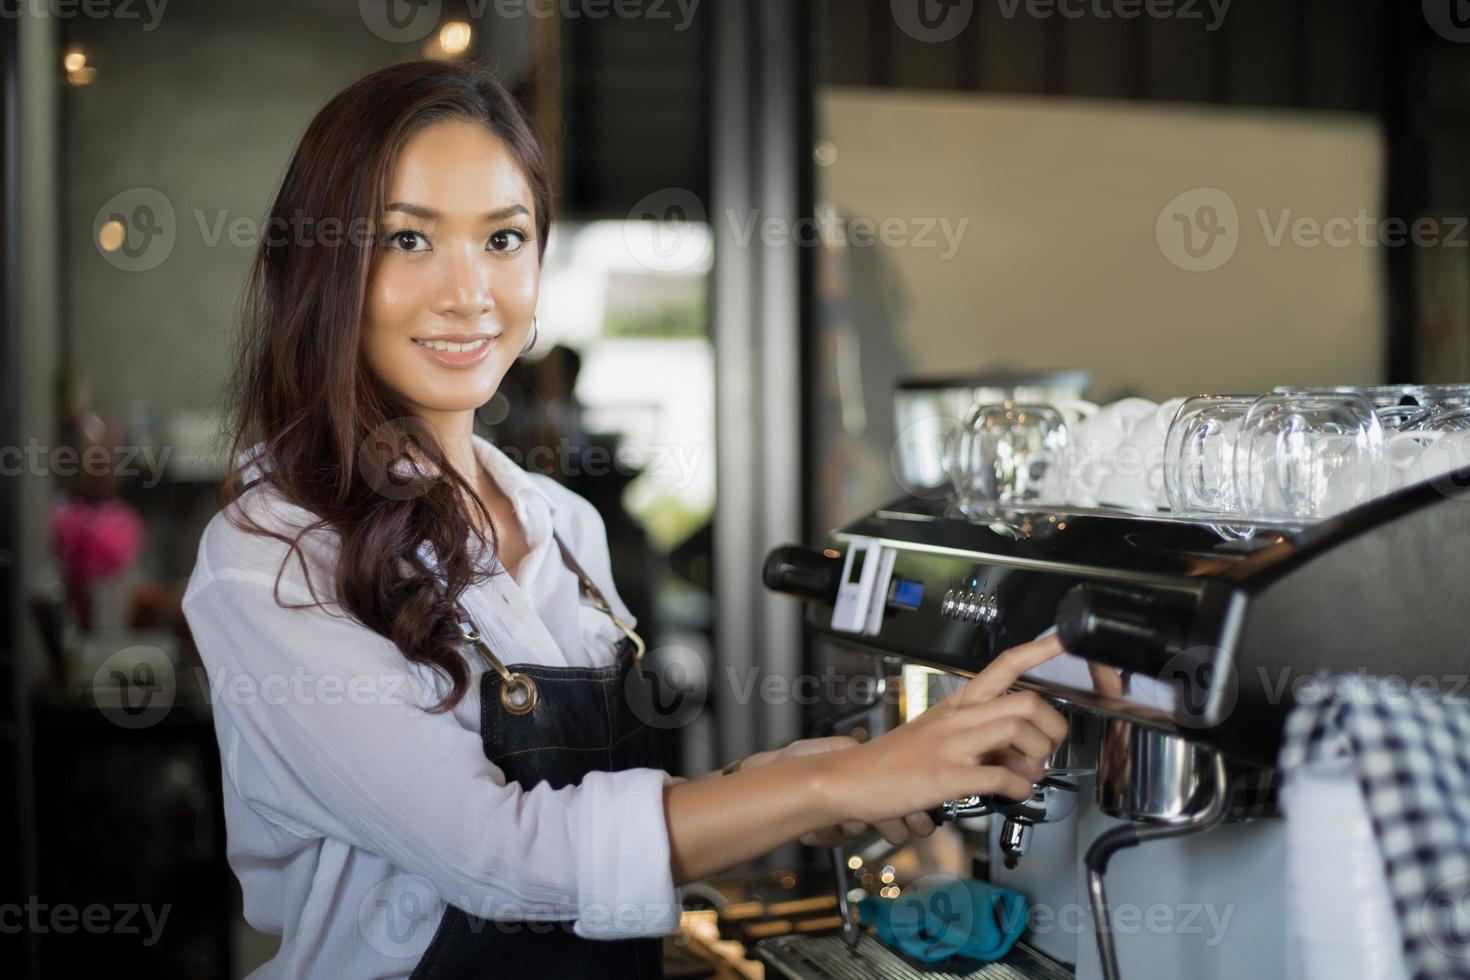 Asian women Barista smiling and using coffee machine in coffee shop counter - Working woman small business owner food and drink cafe concept photo